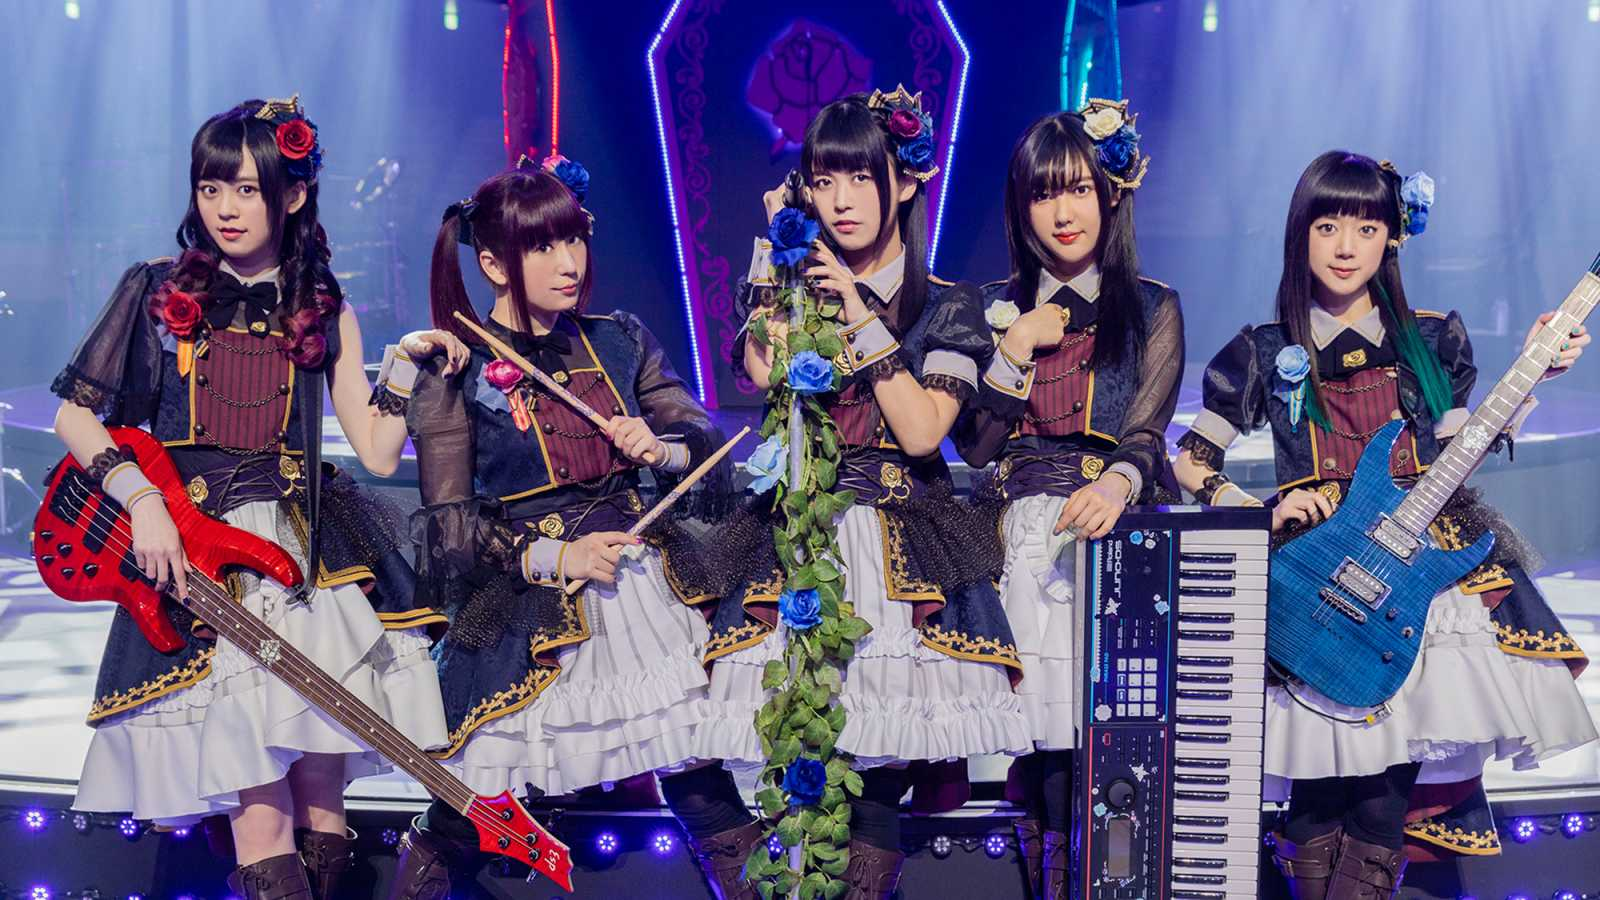 Roselia © bushiroad All rights reserved.